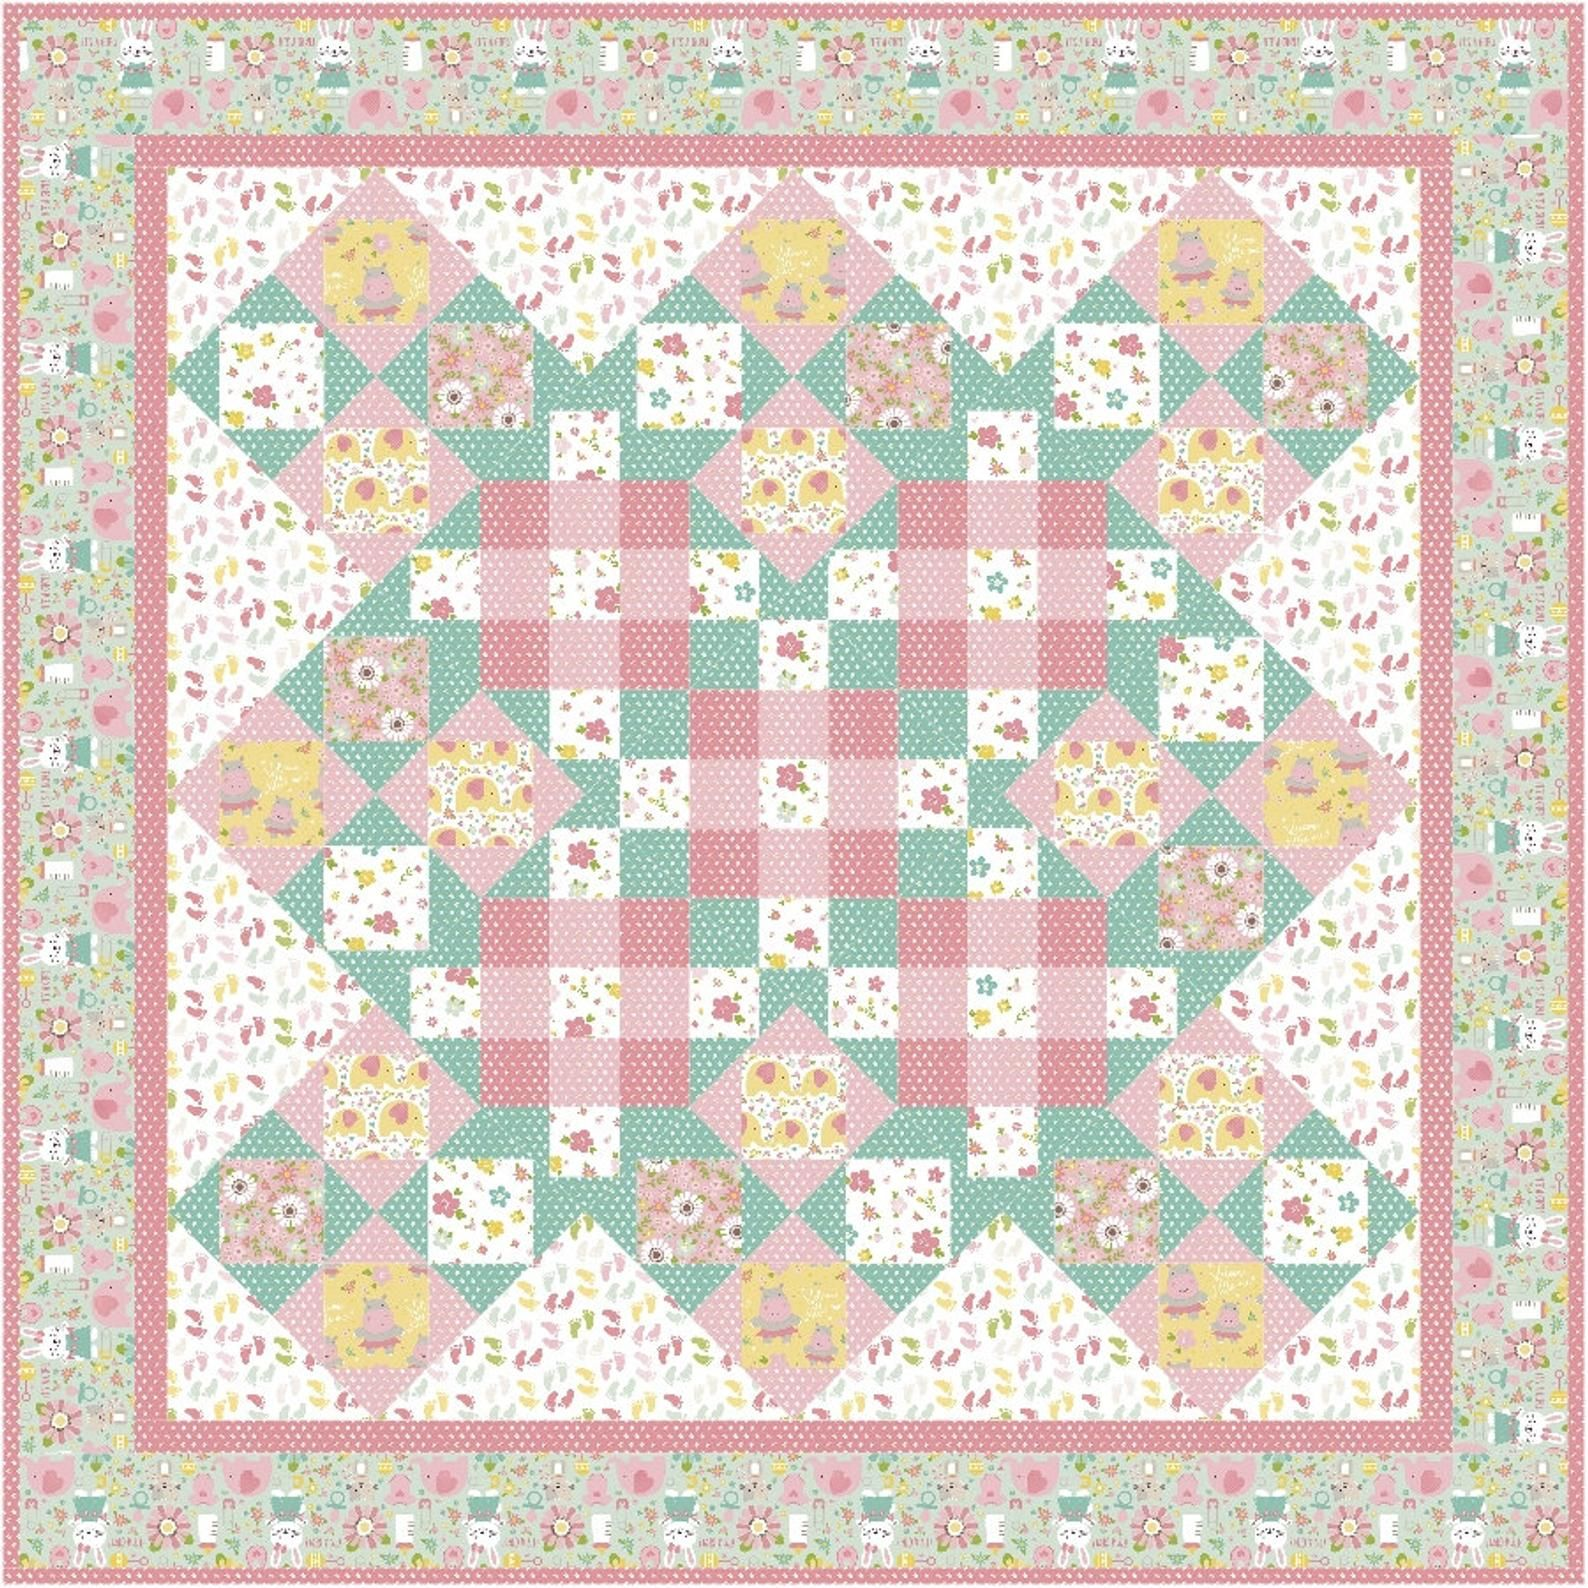 Easy quilt pattern for beginners Vintage Girl baby